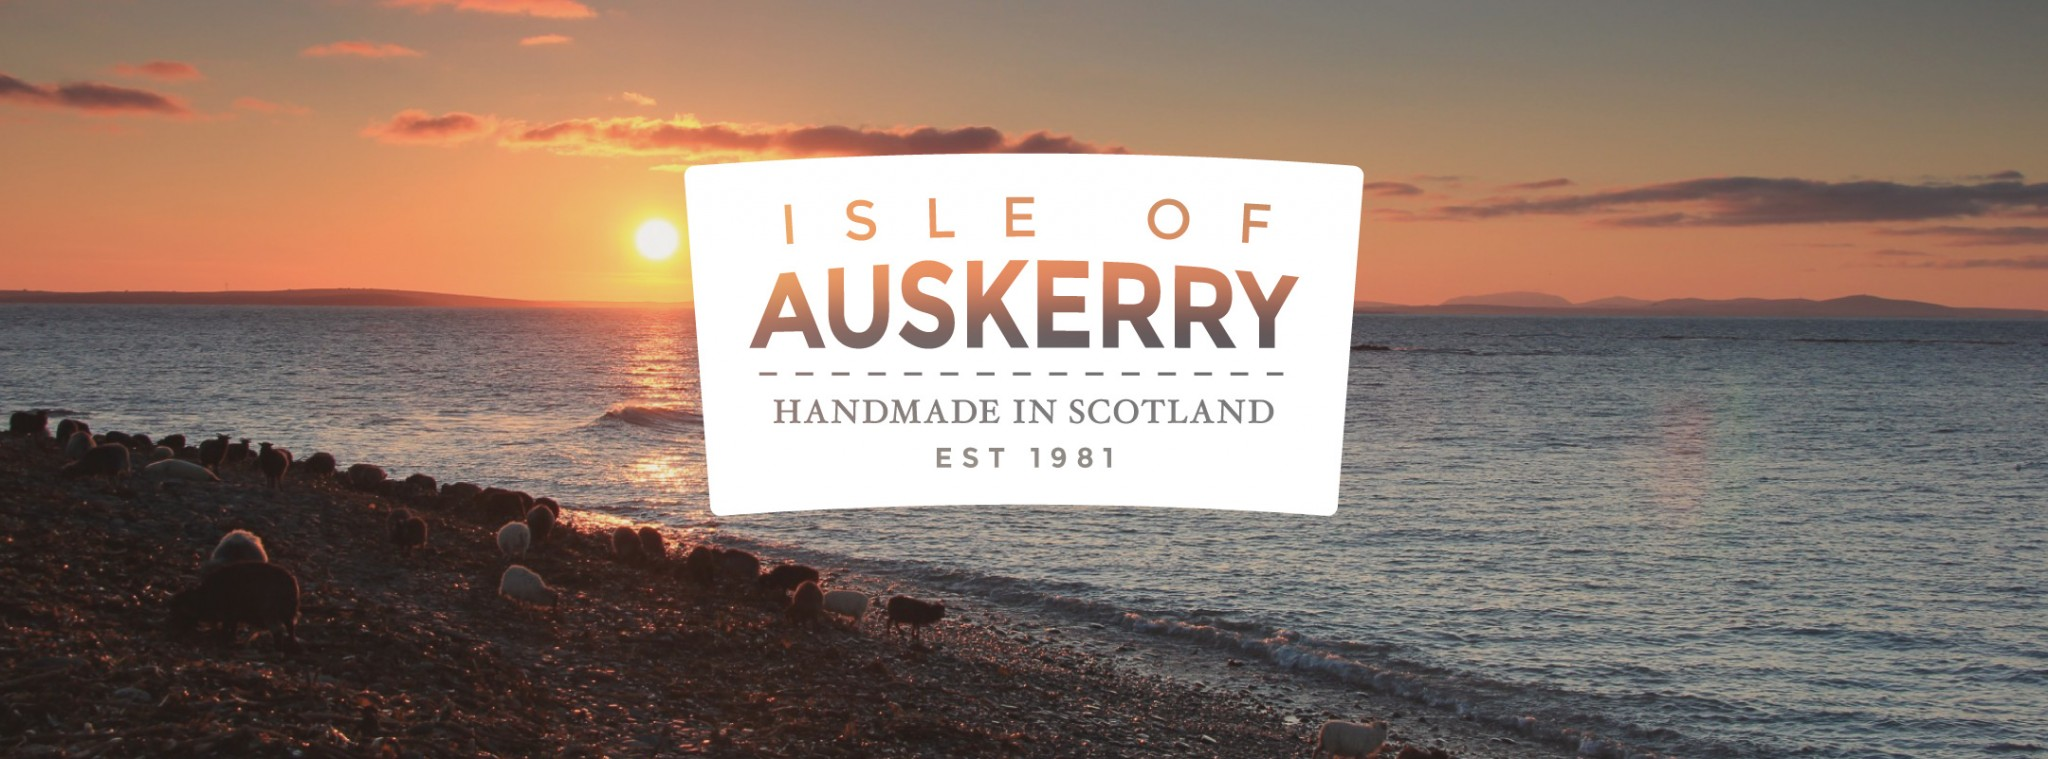 Isle Of Auskerry Luxury Wool Products From Orkney